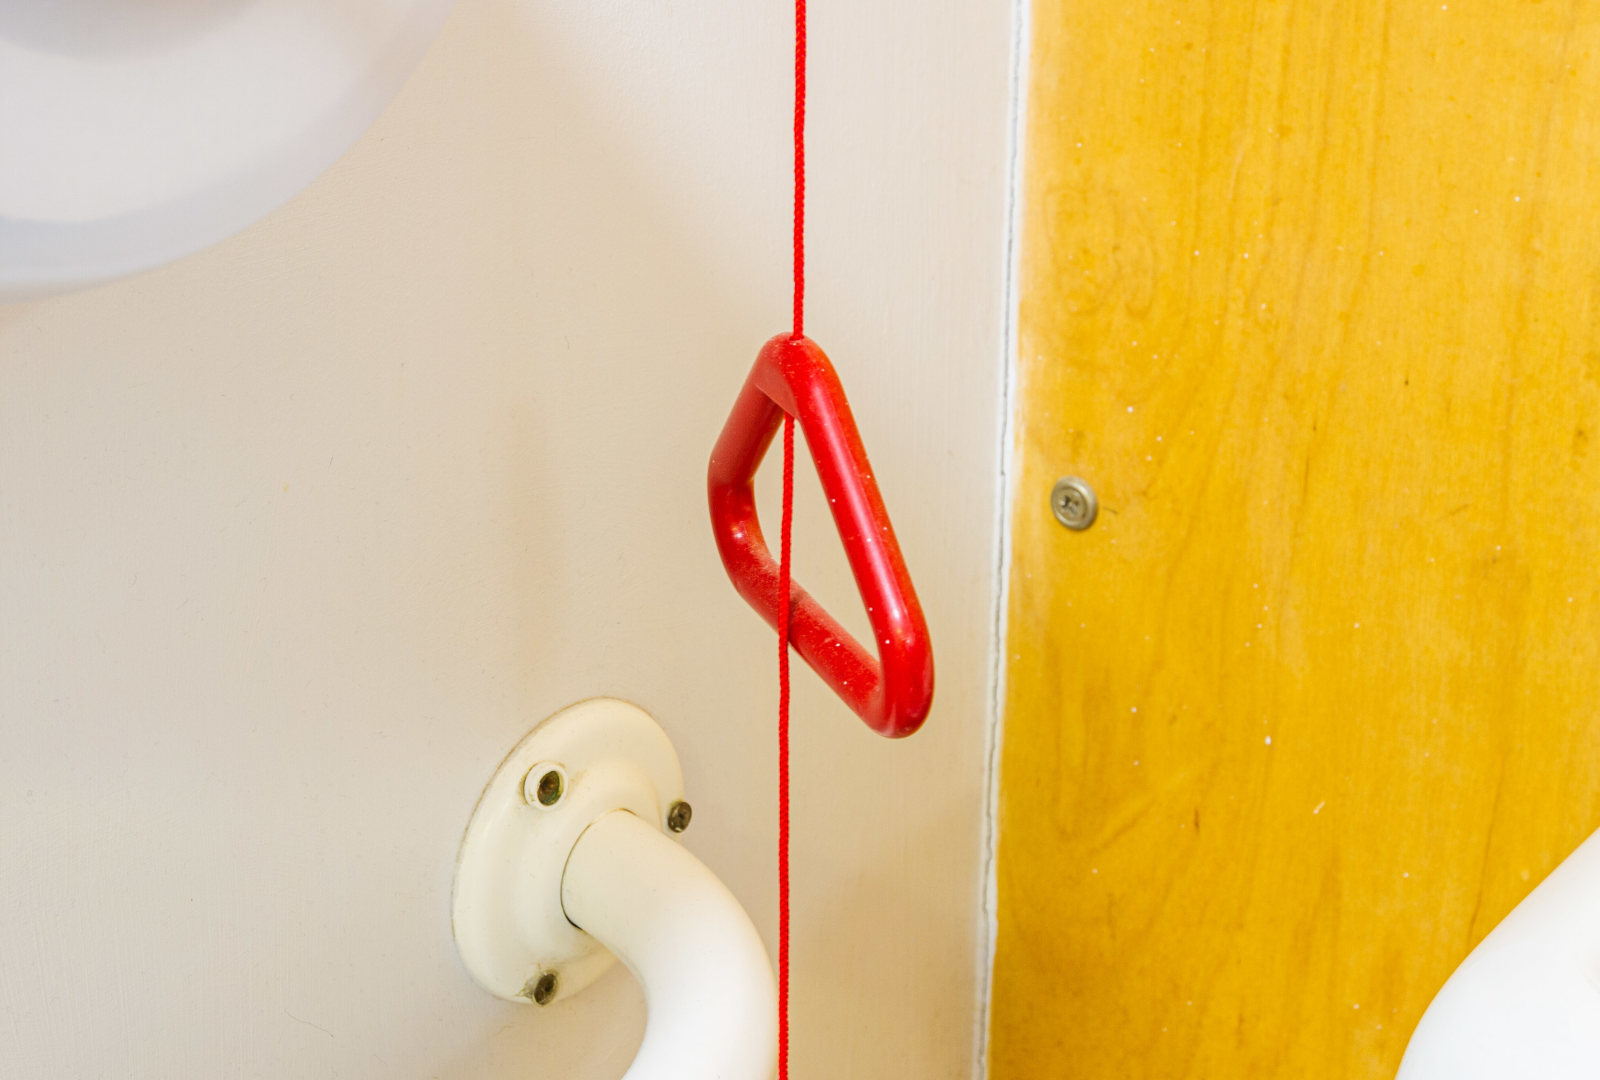 Red pull cord